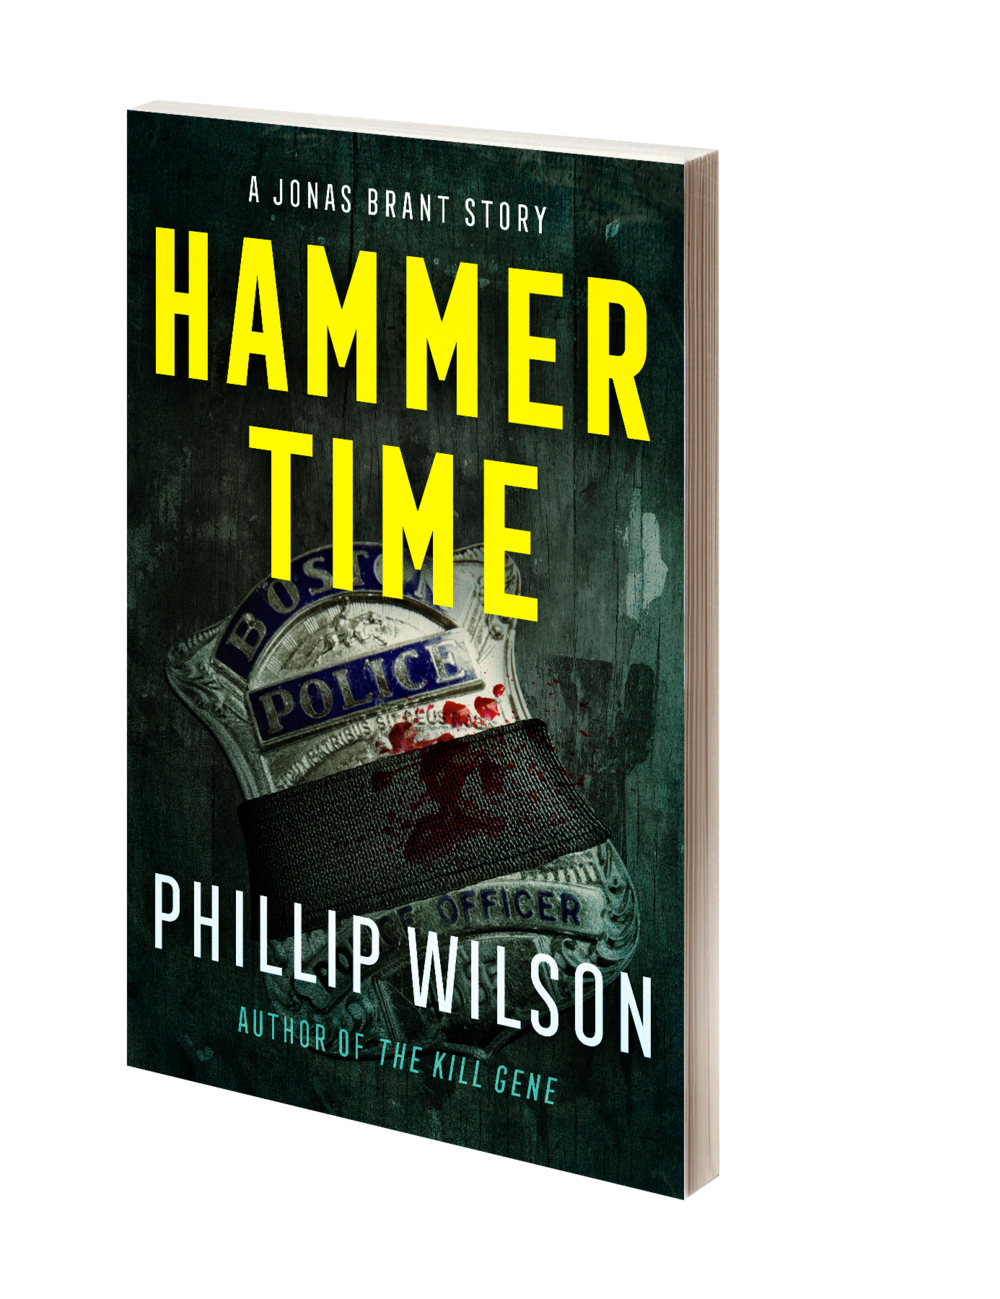 1805 Phillip Wilson HAMMER TIME_transparant 3D.png